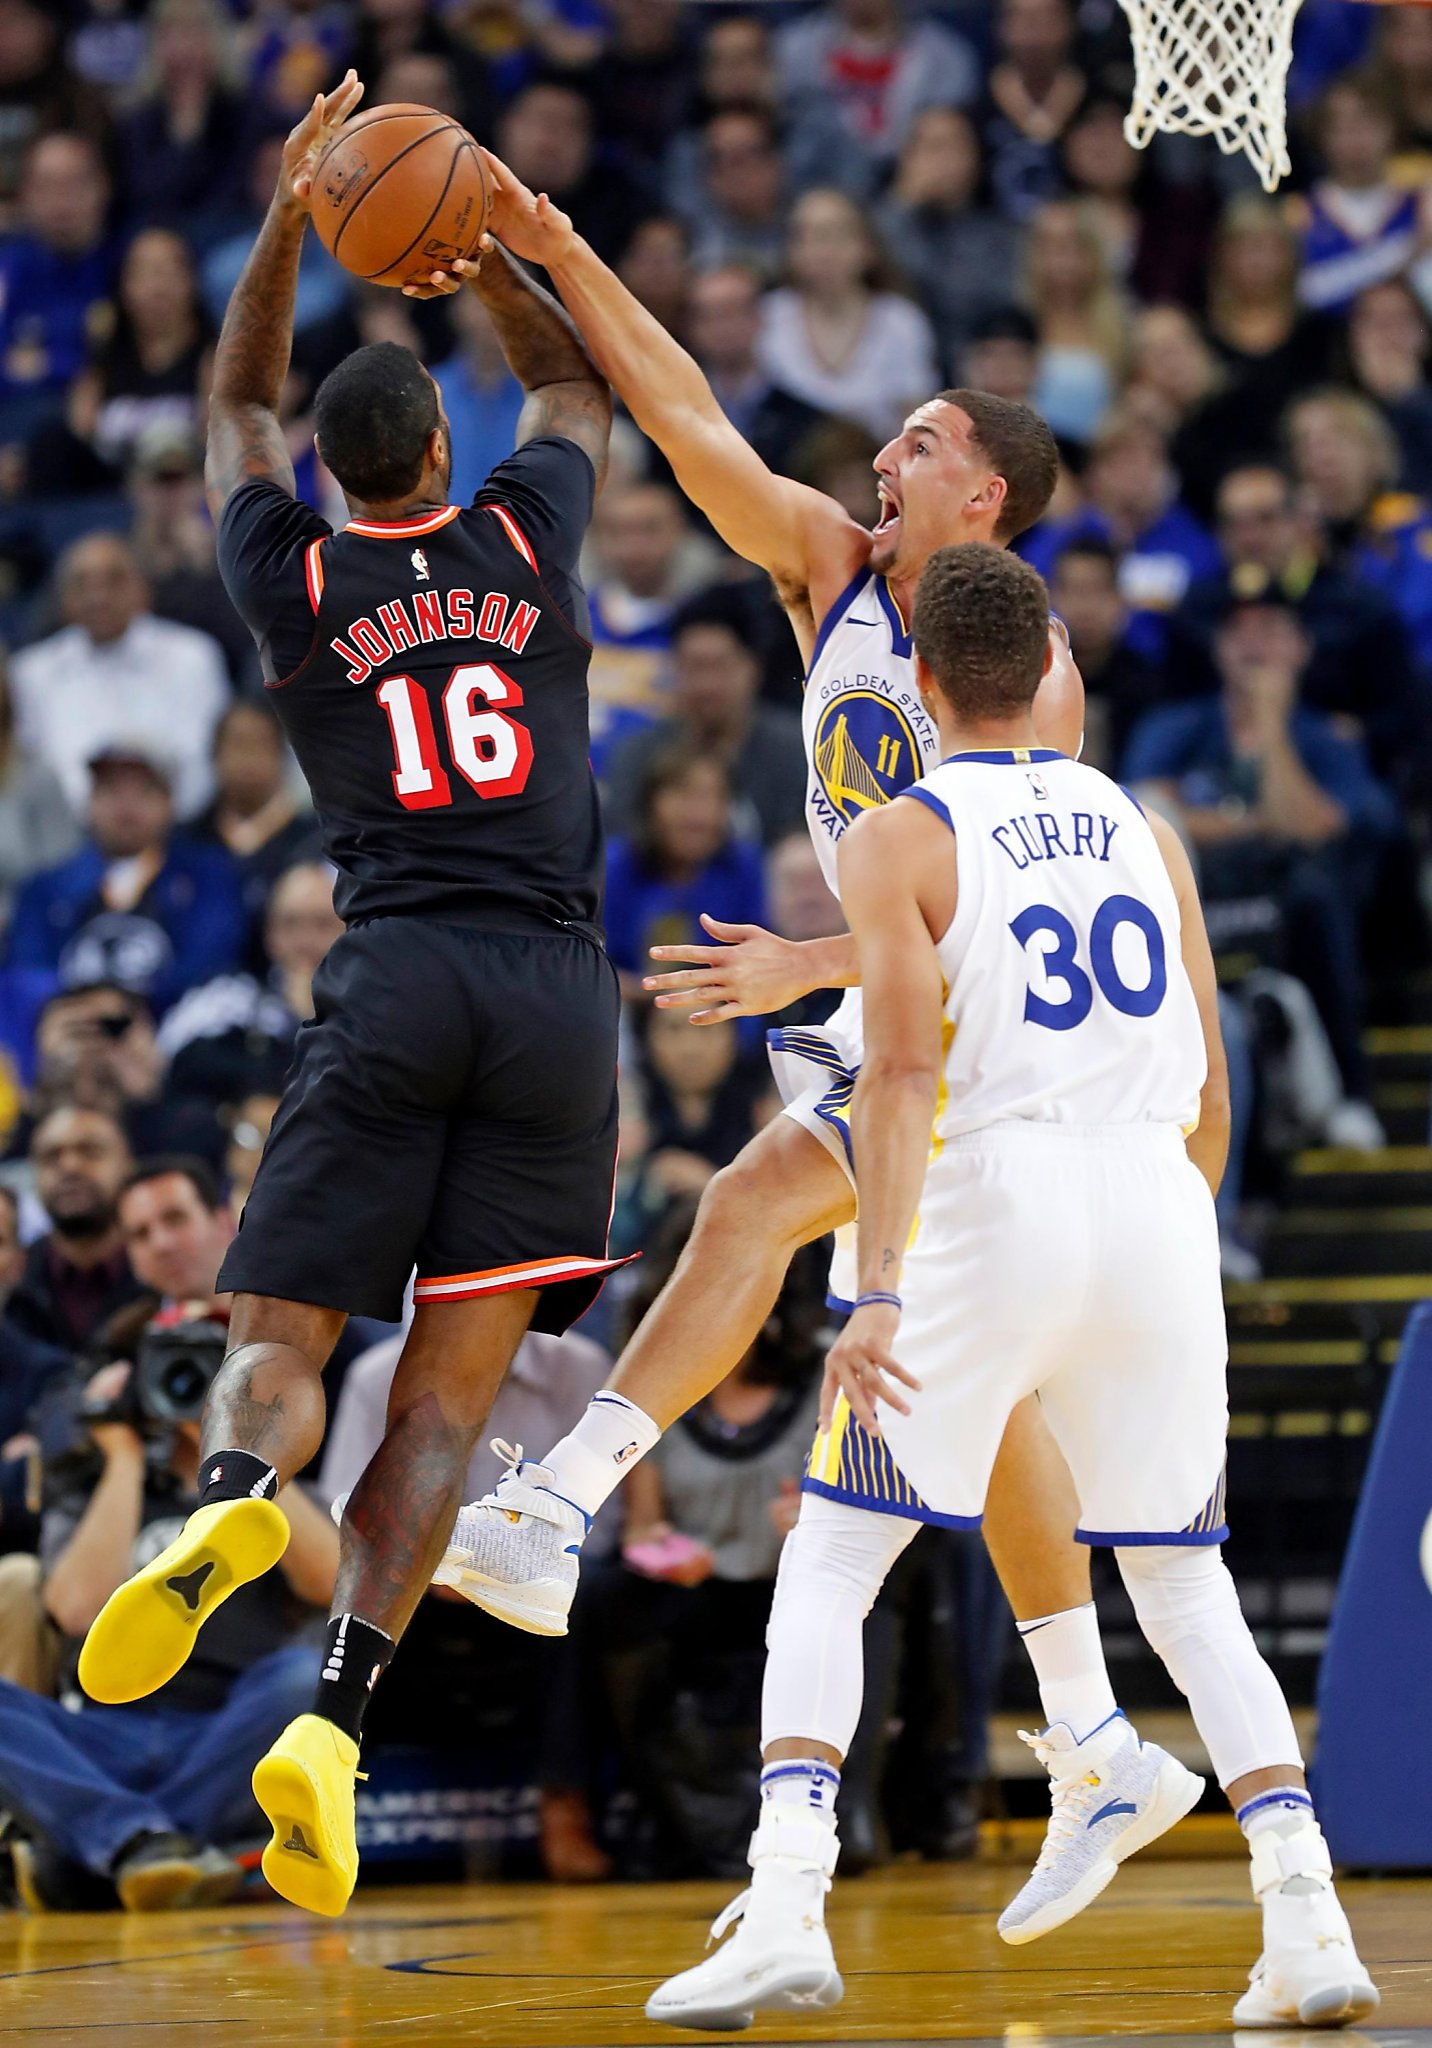 cc0dd9e31cff Warriors show off improved defense in rout of Heat - SFGate